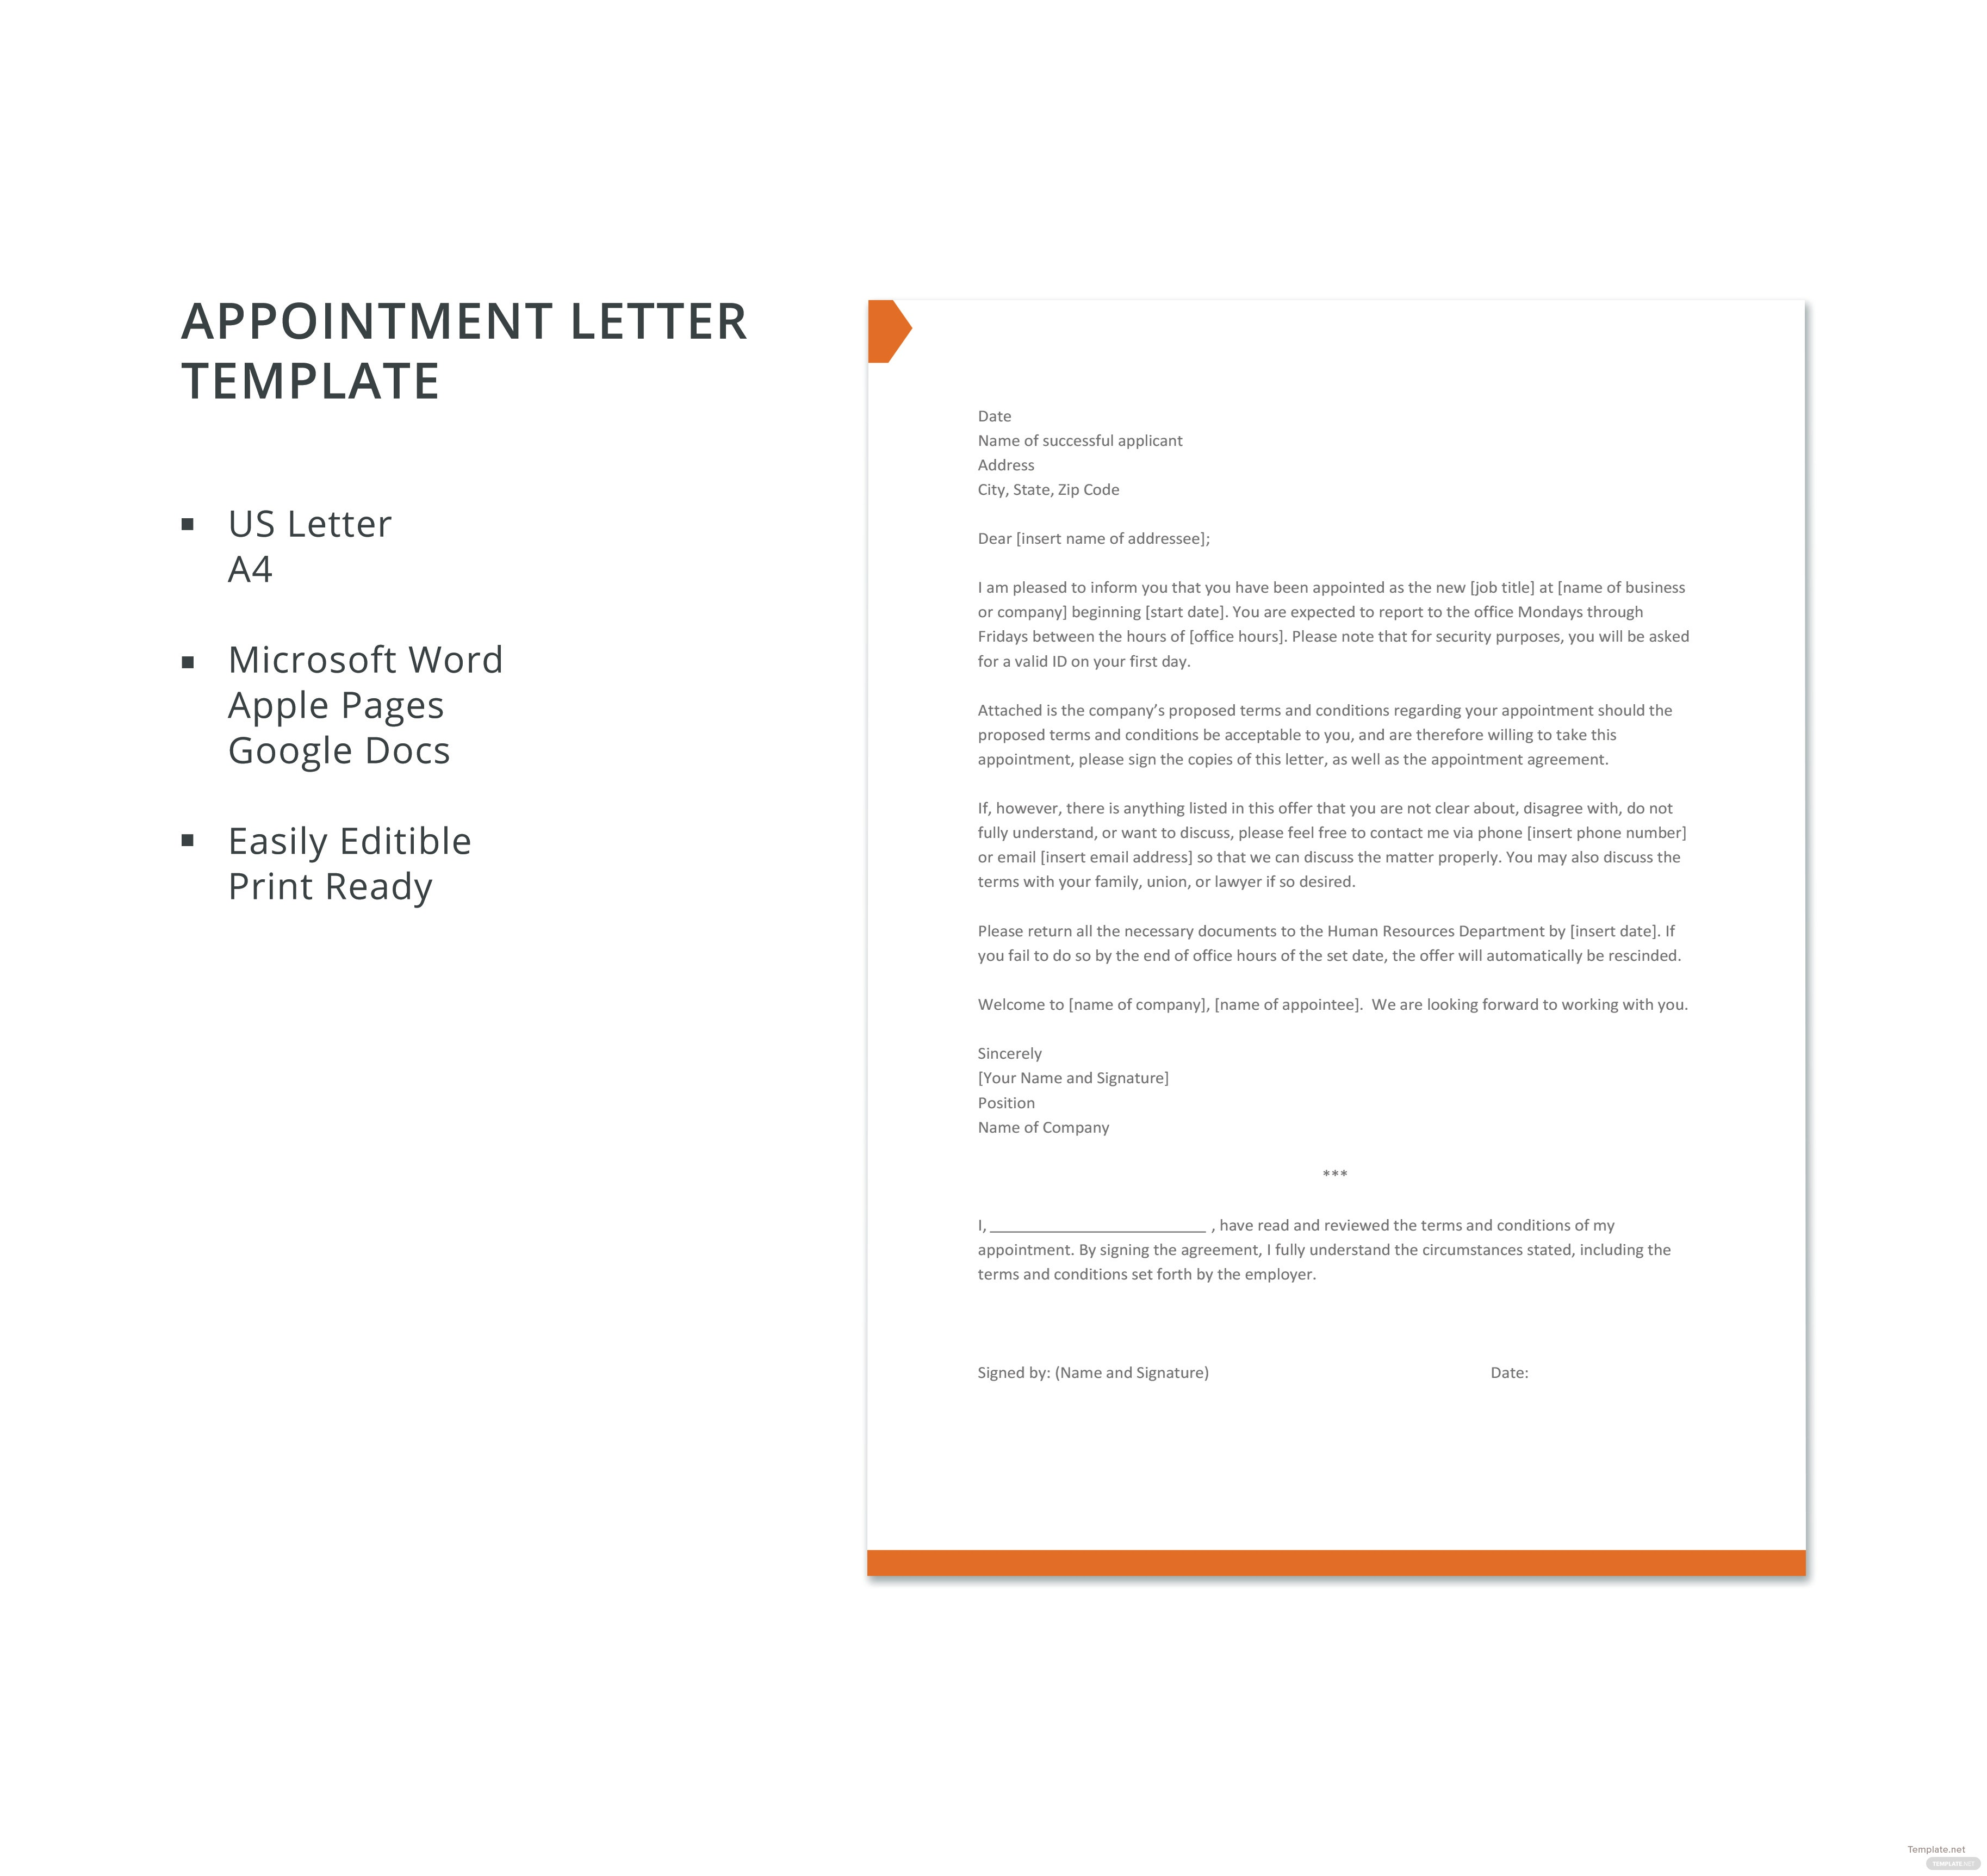 Appointment Letter Template In Microsoft Word Apple Pages Google